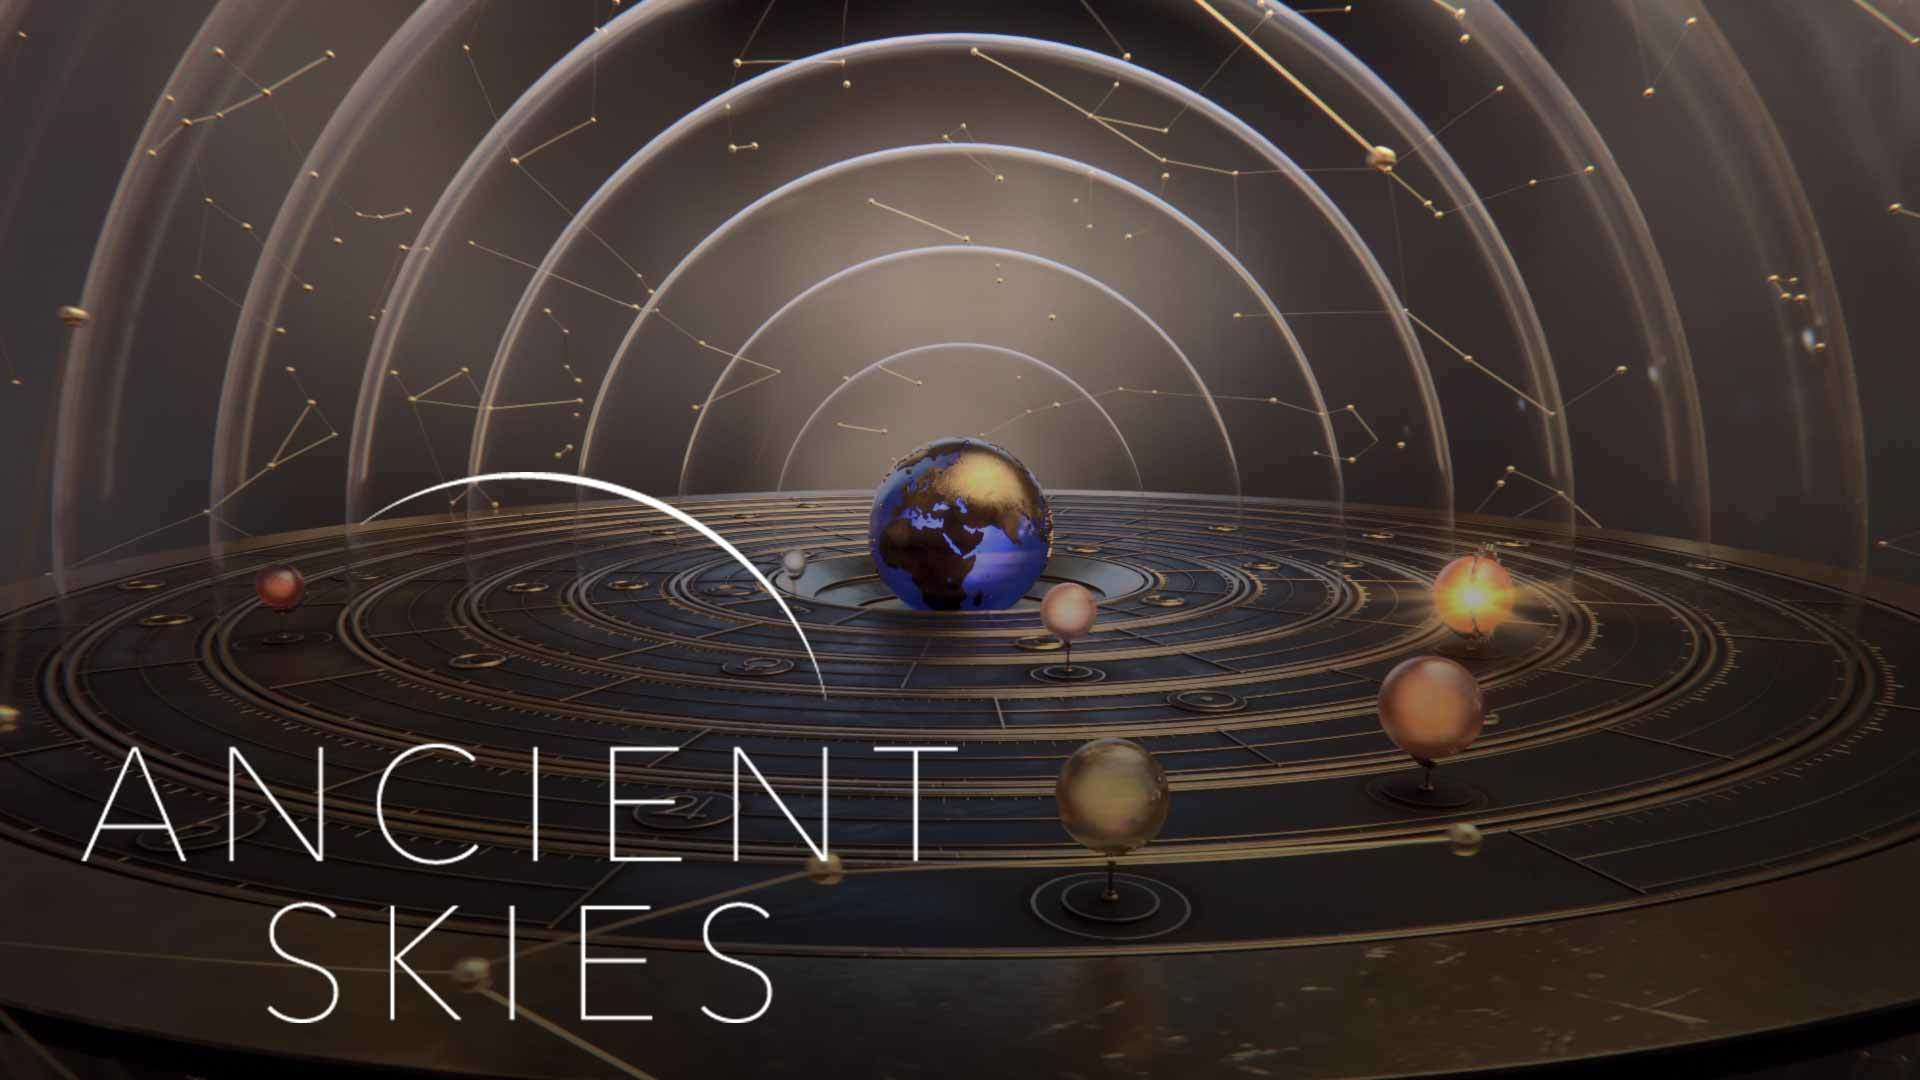 Image from Ancient Skies